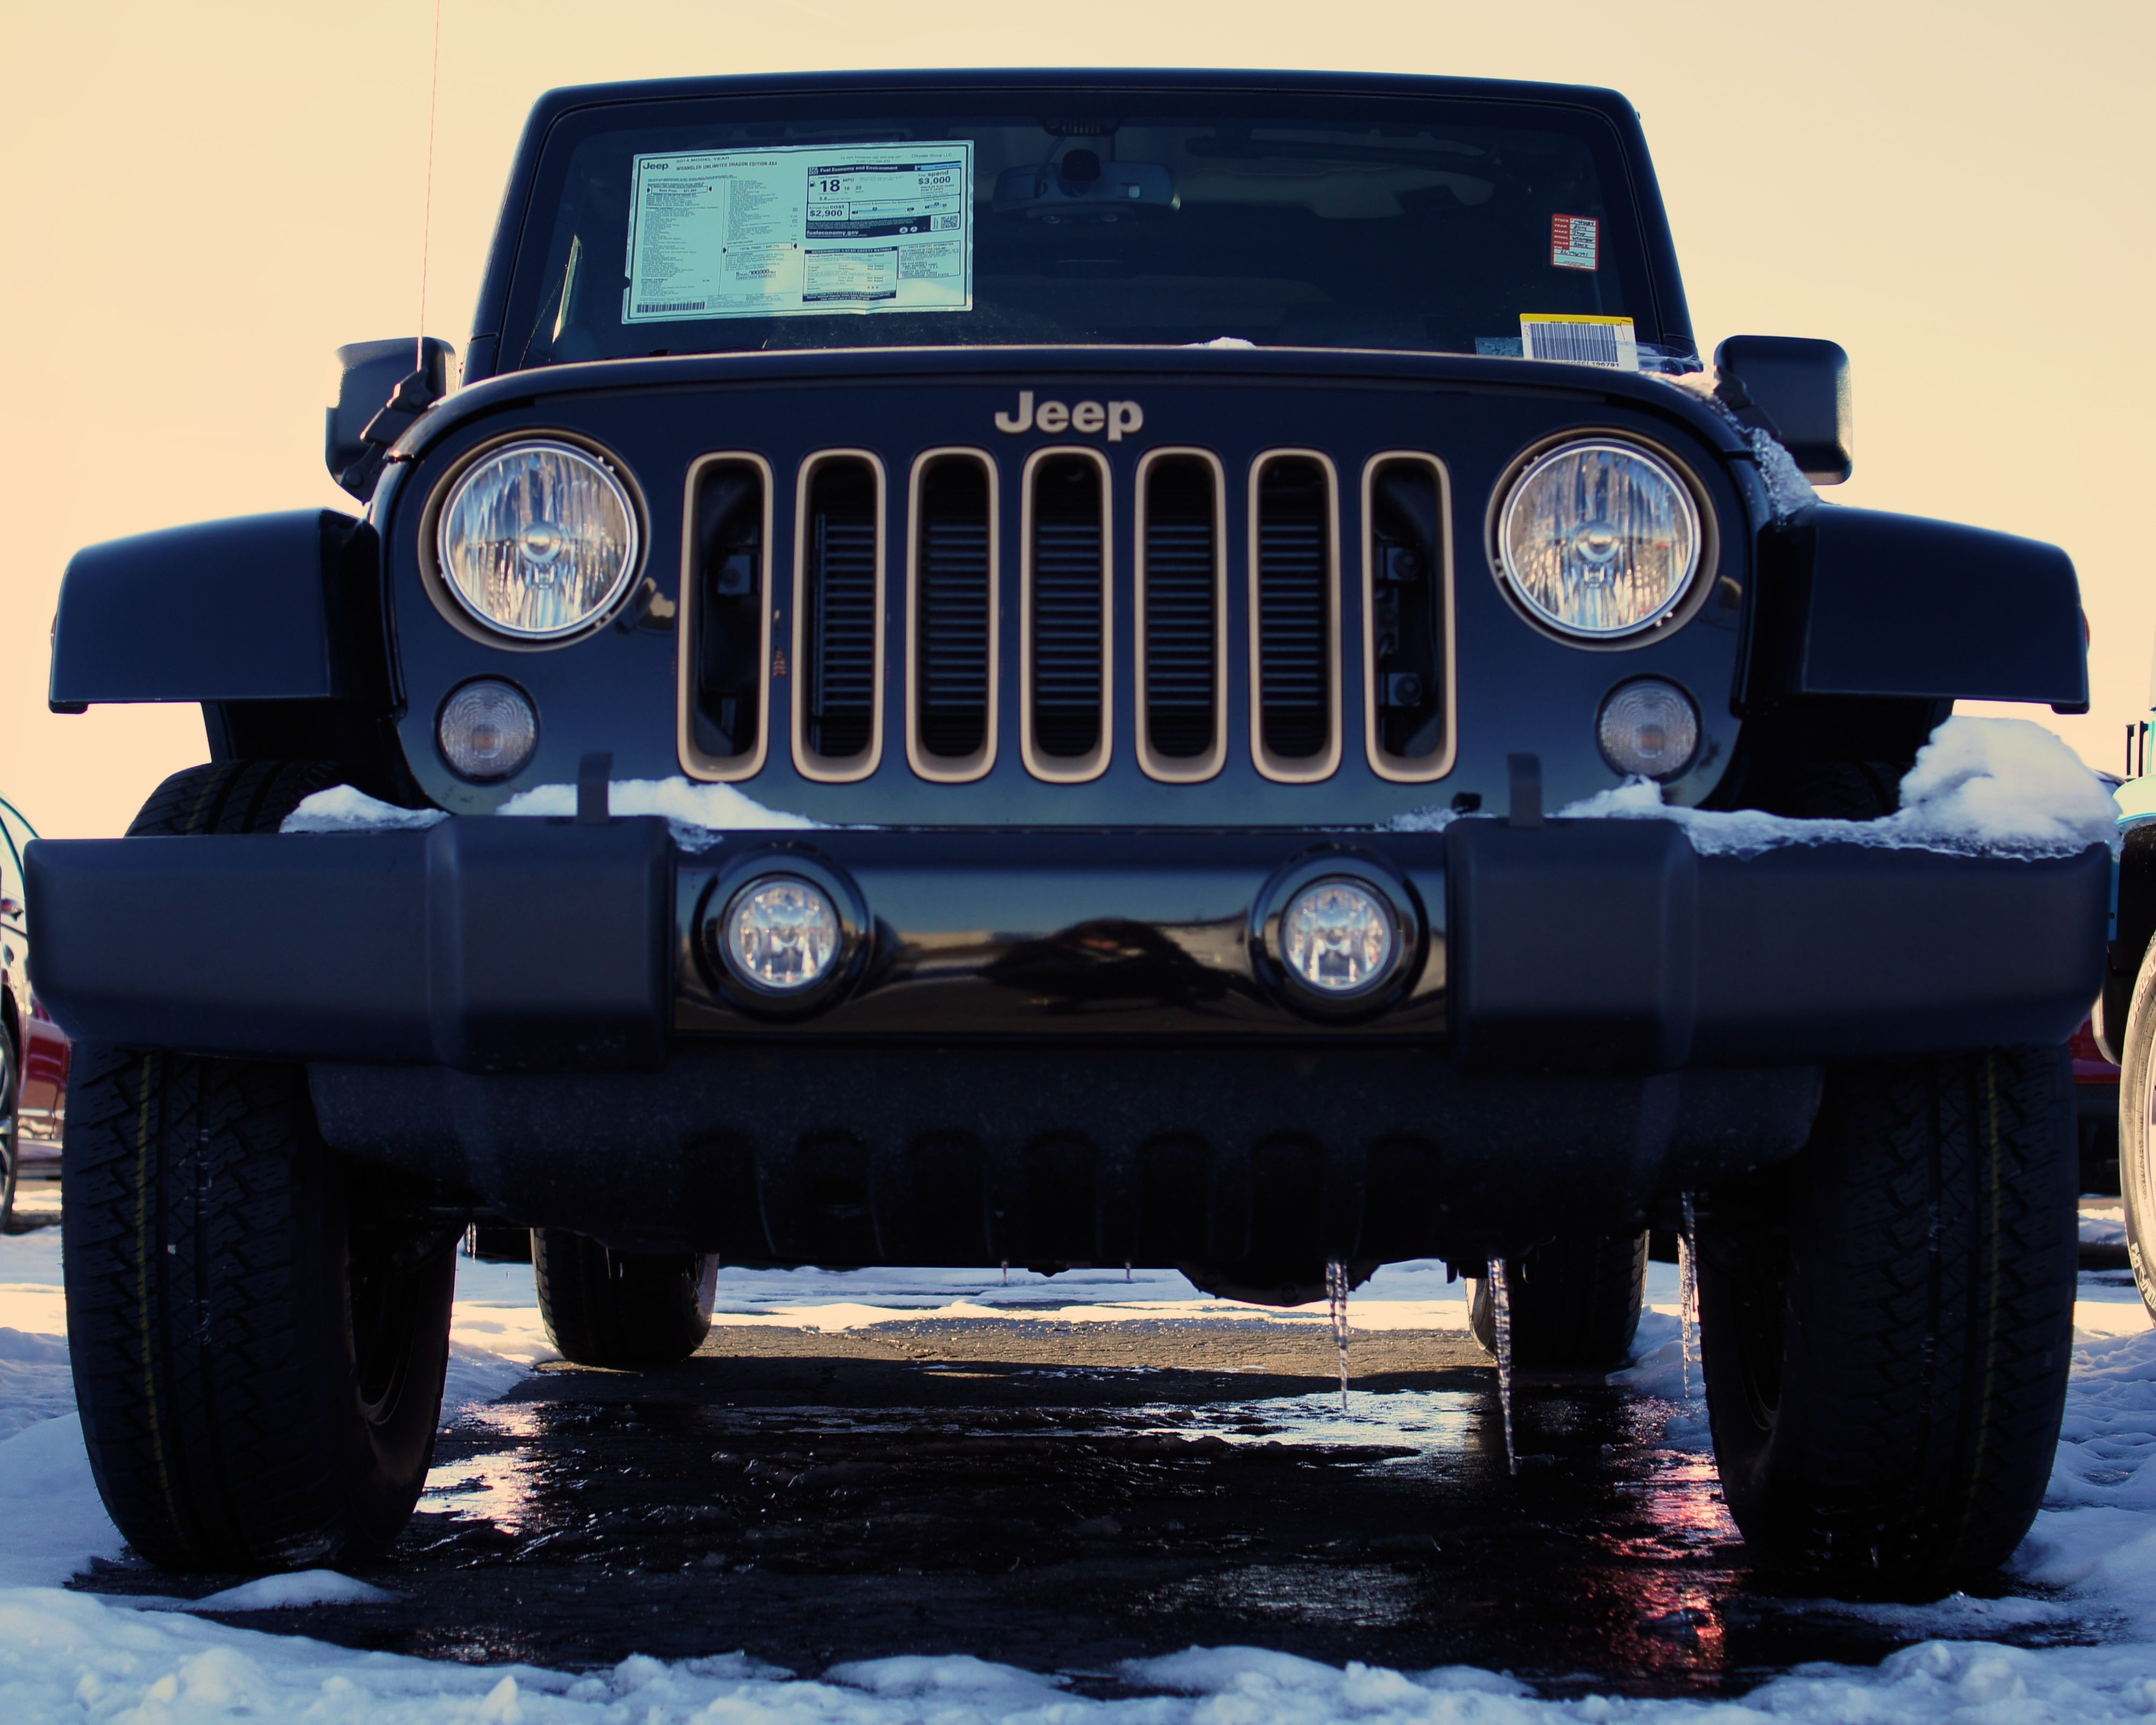 Cars for Sale Indianapolis, IN Jeep, Jeep dealer, Jeep dodge